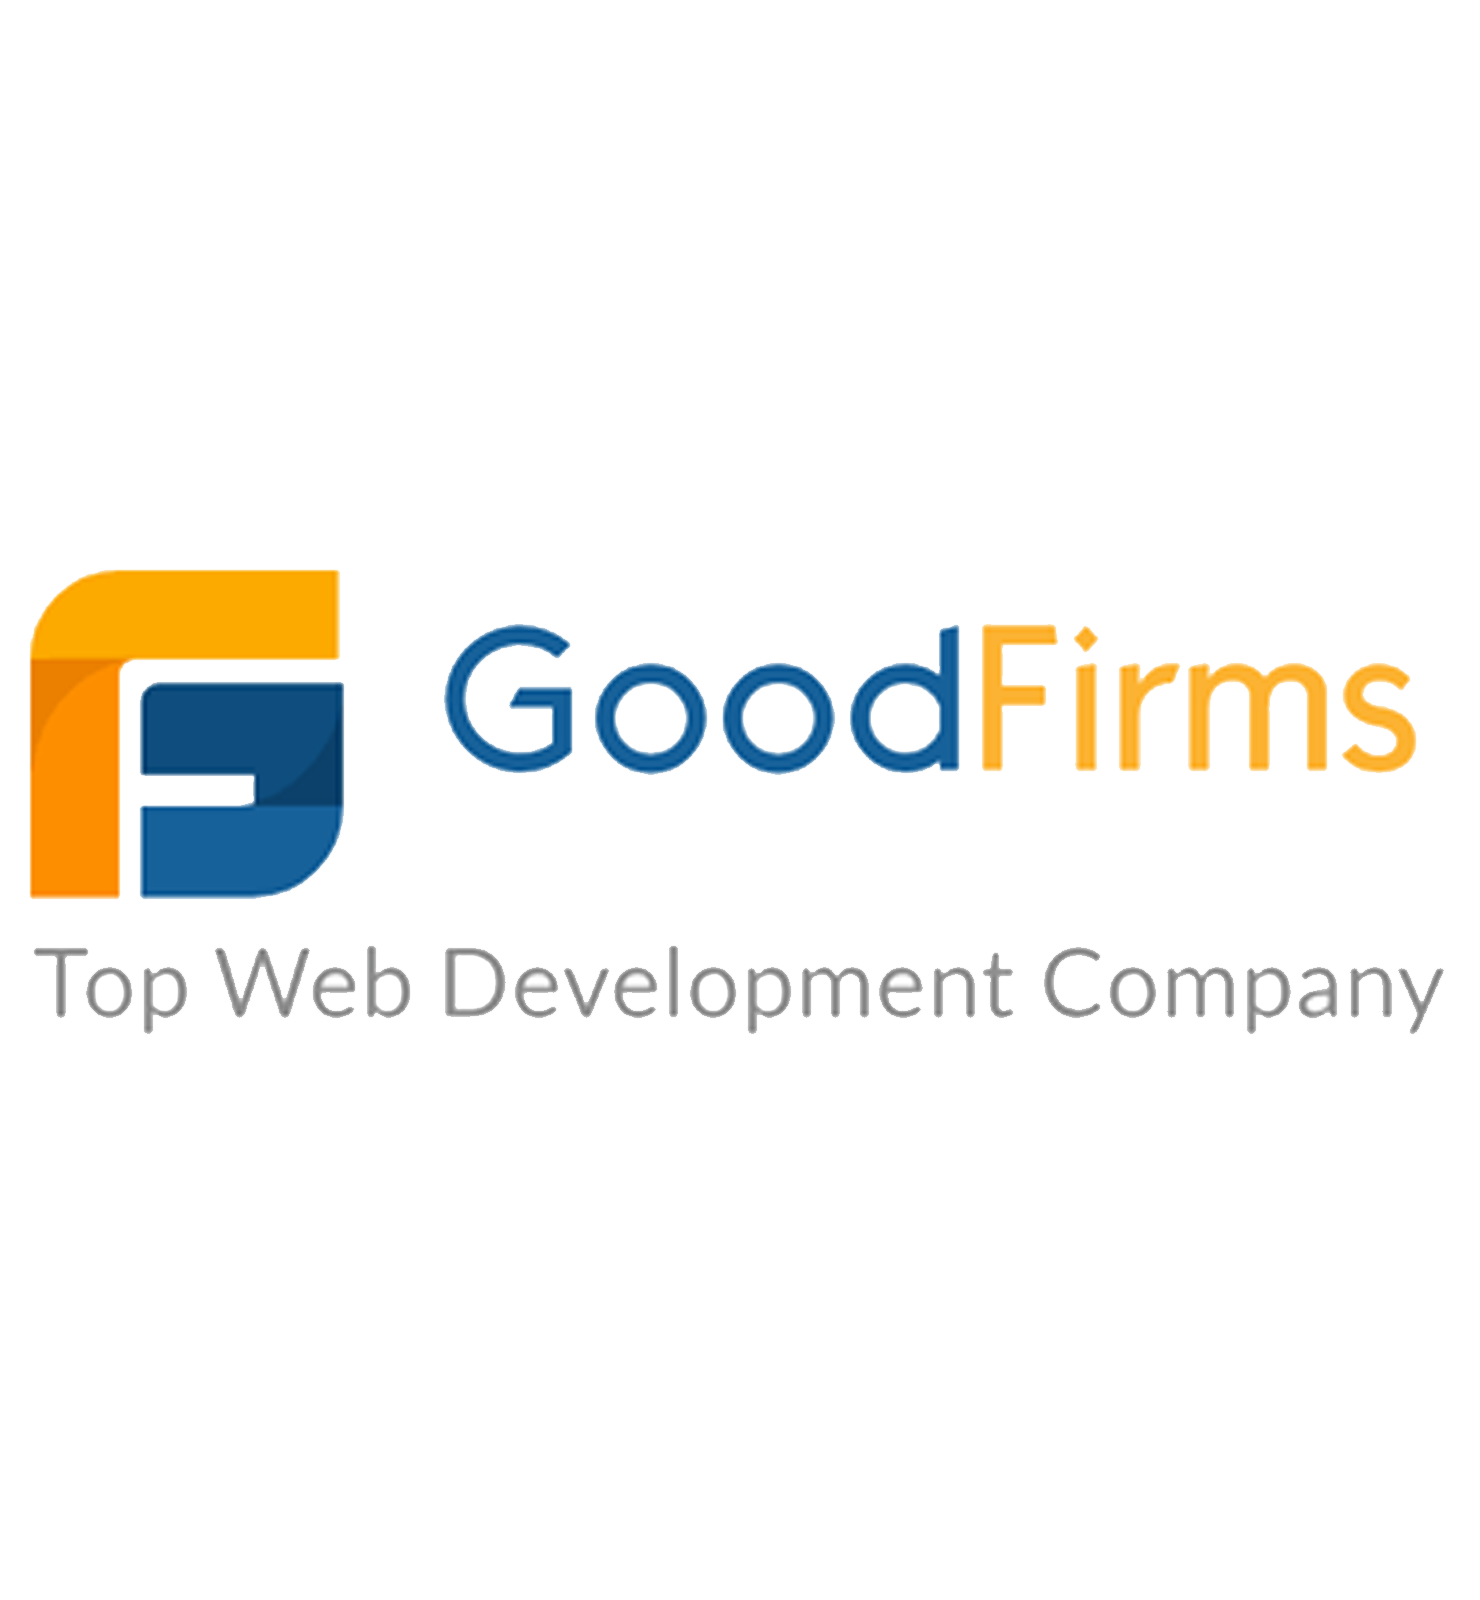 GoodFirms Top Web Development Company